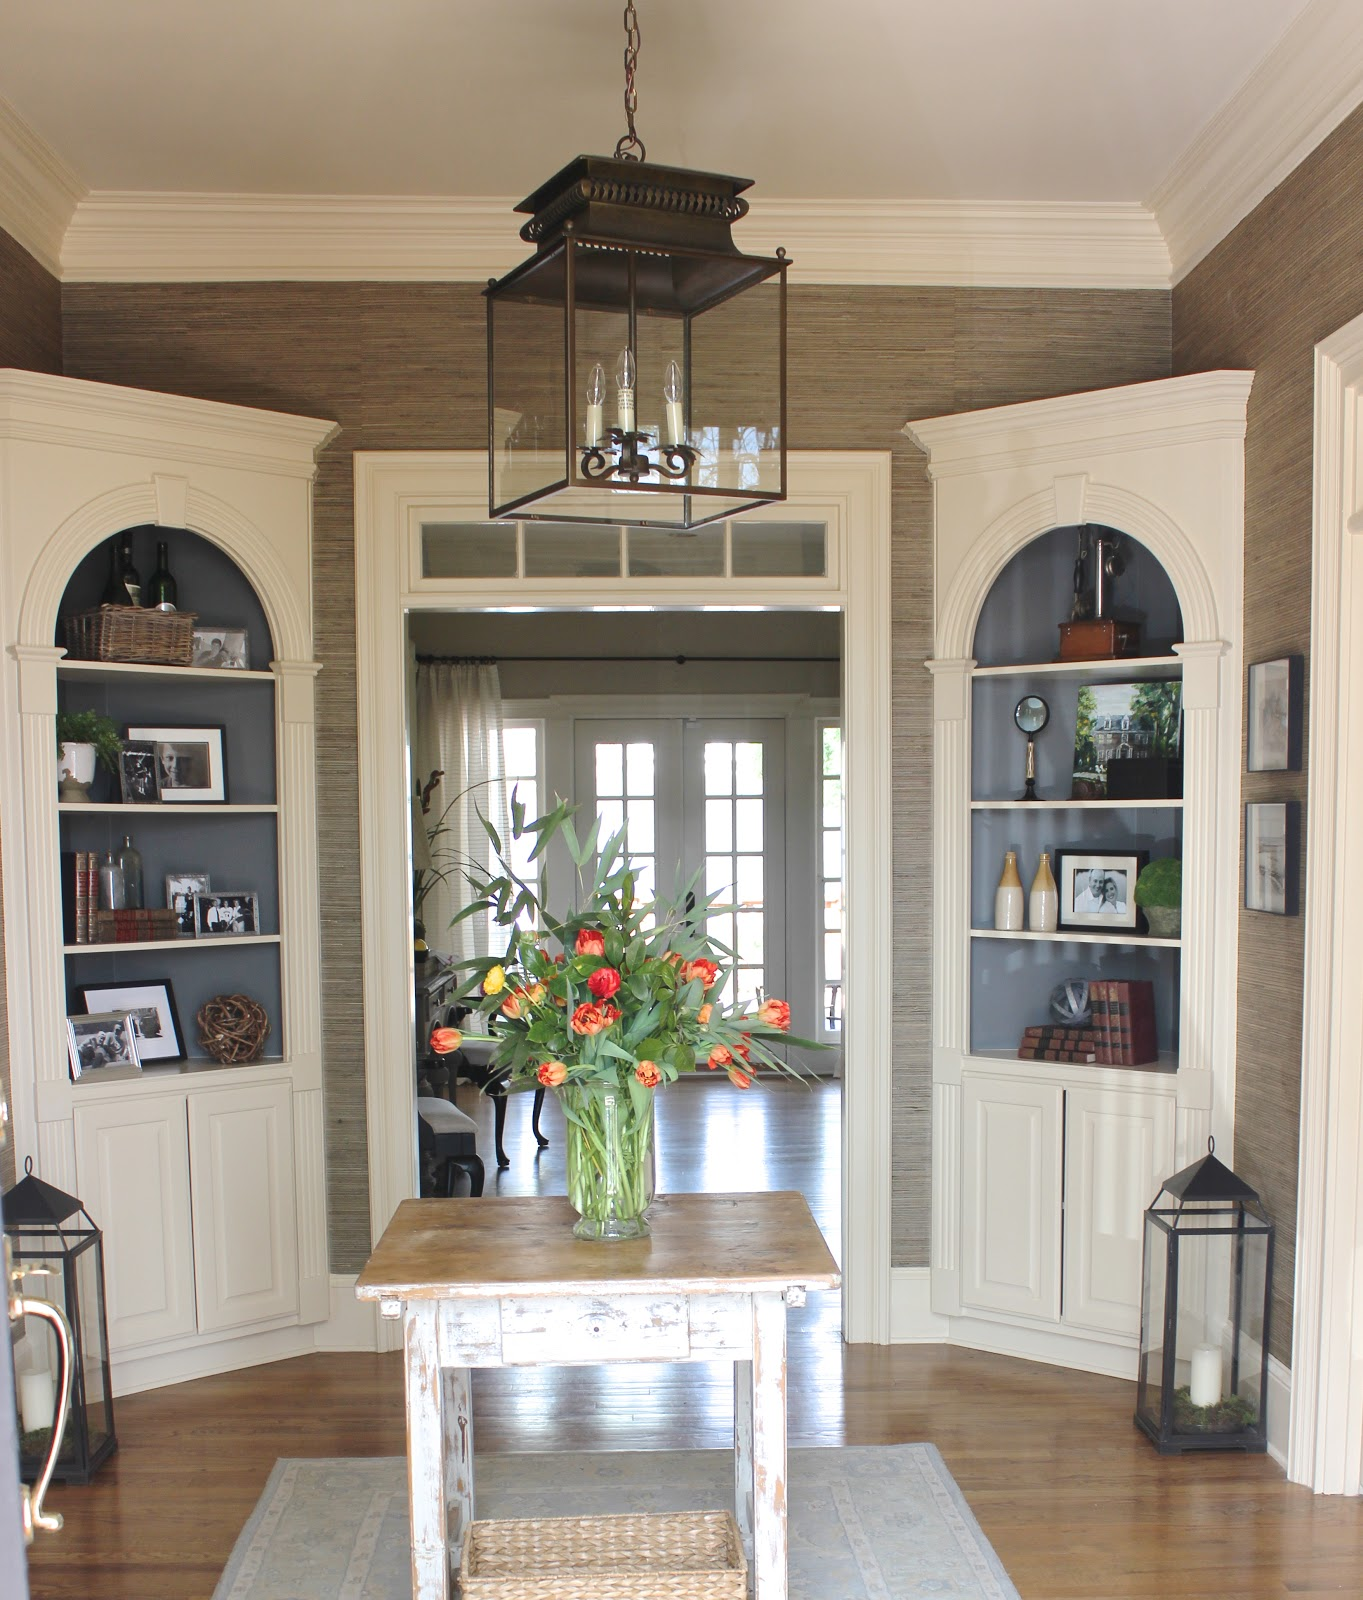 Corner Dining Room Cabinet: BEFORE AND AFTER OF THE FOYER